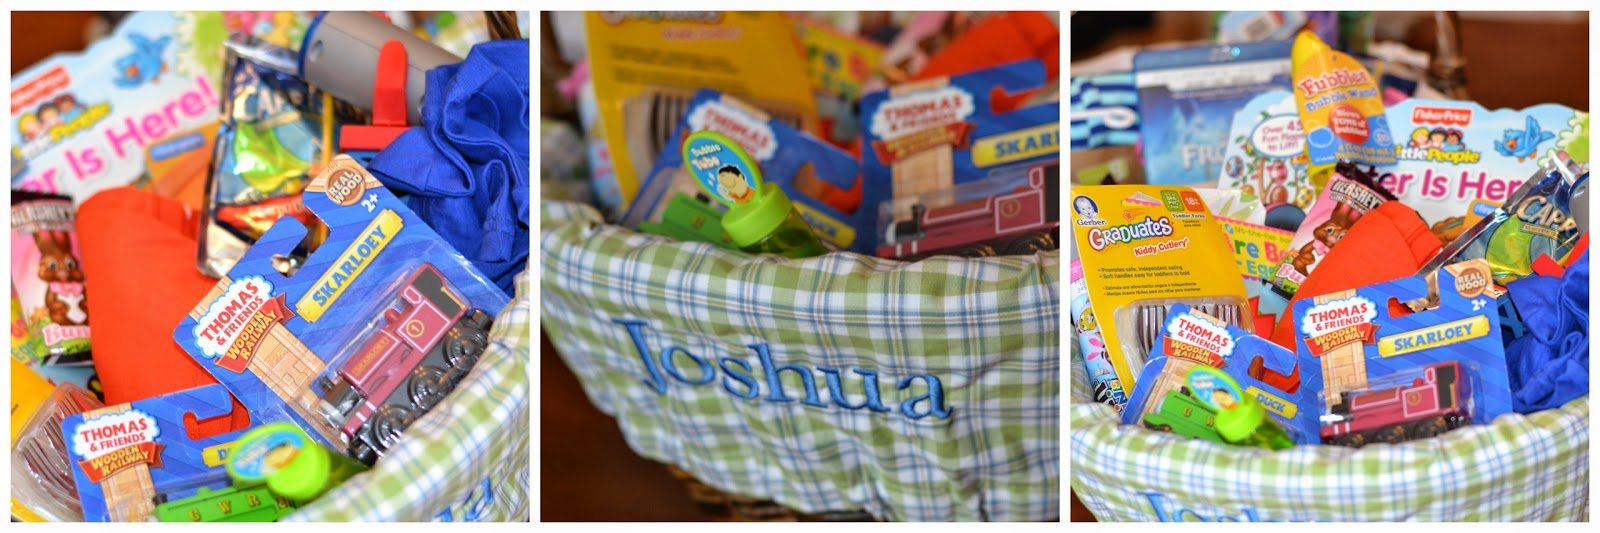 Easter basket ideas for any kid happily a housewife we have the sabrina basket and i did it in natural because i figured white would show wear over the years there are so many adorable liners to go with them negle Choice Image